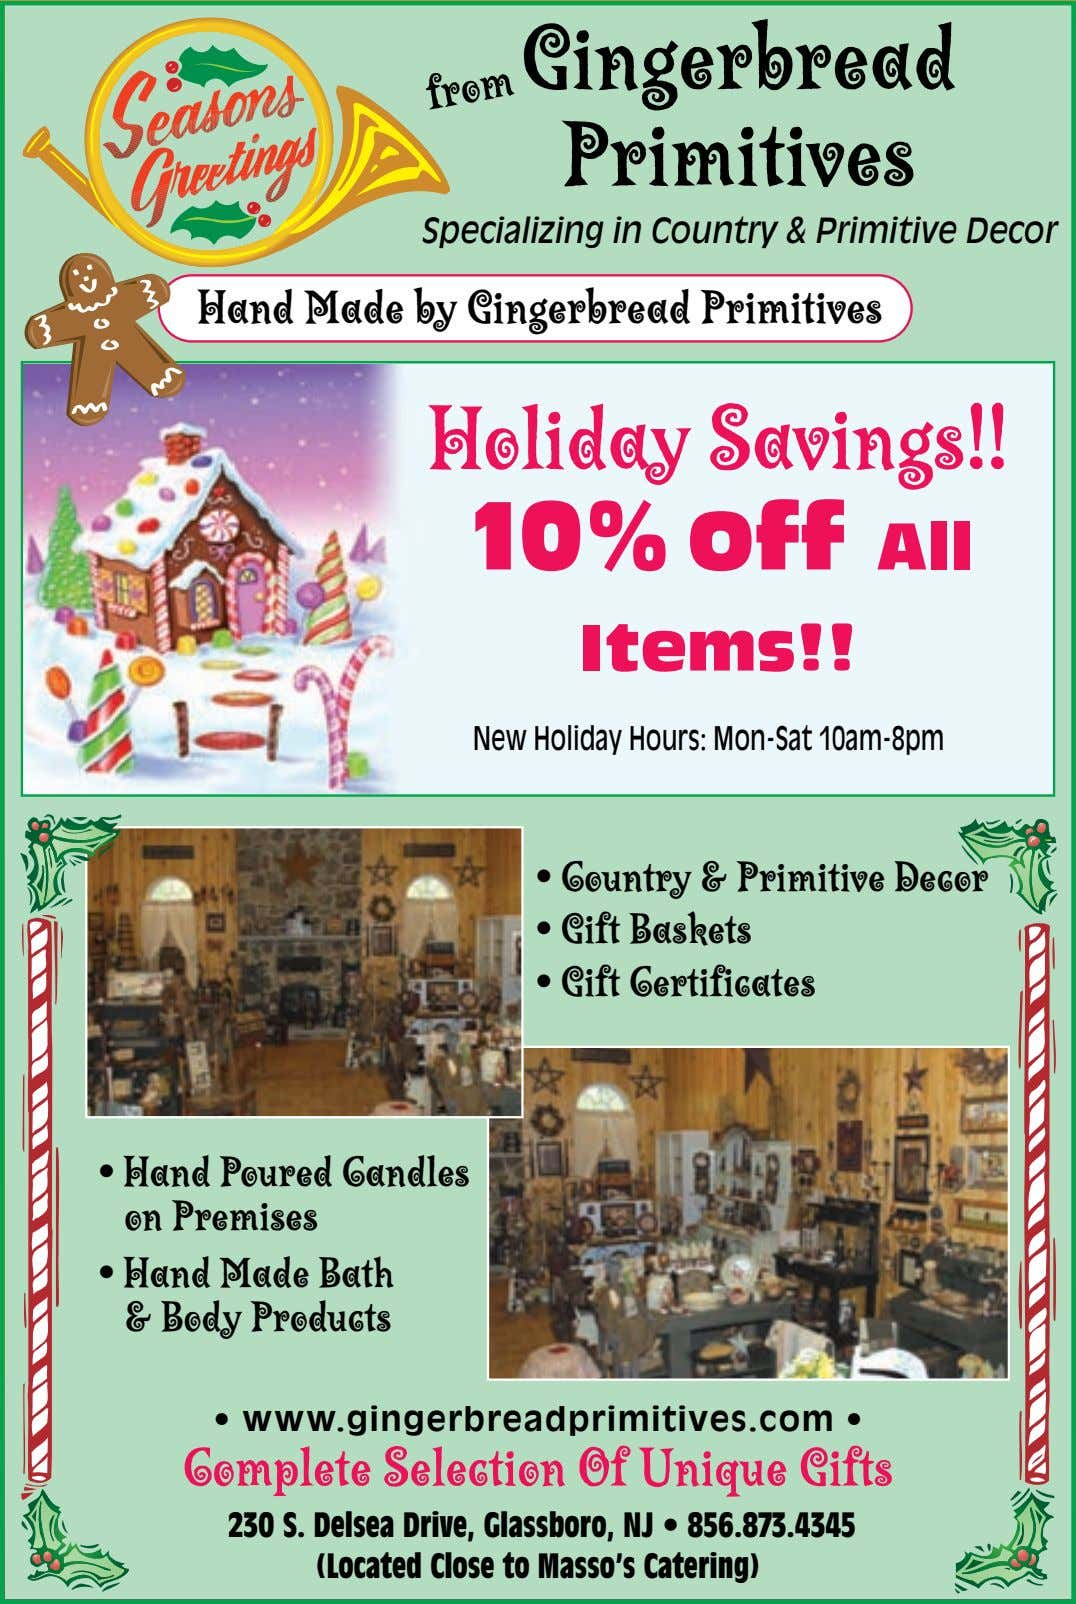 Gingerbread Primitives from Specializing in Country & Primitive Decor Hand Made by Gingerbread Primitives Holiday Savings!!